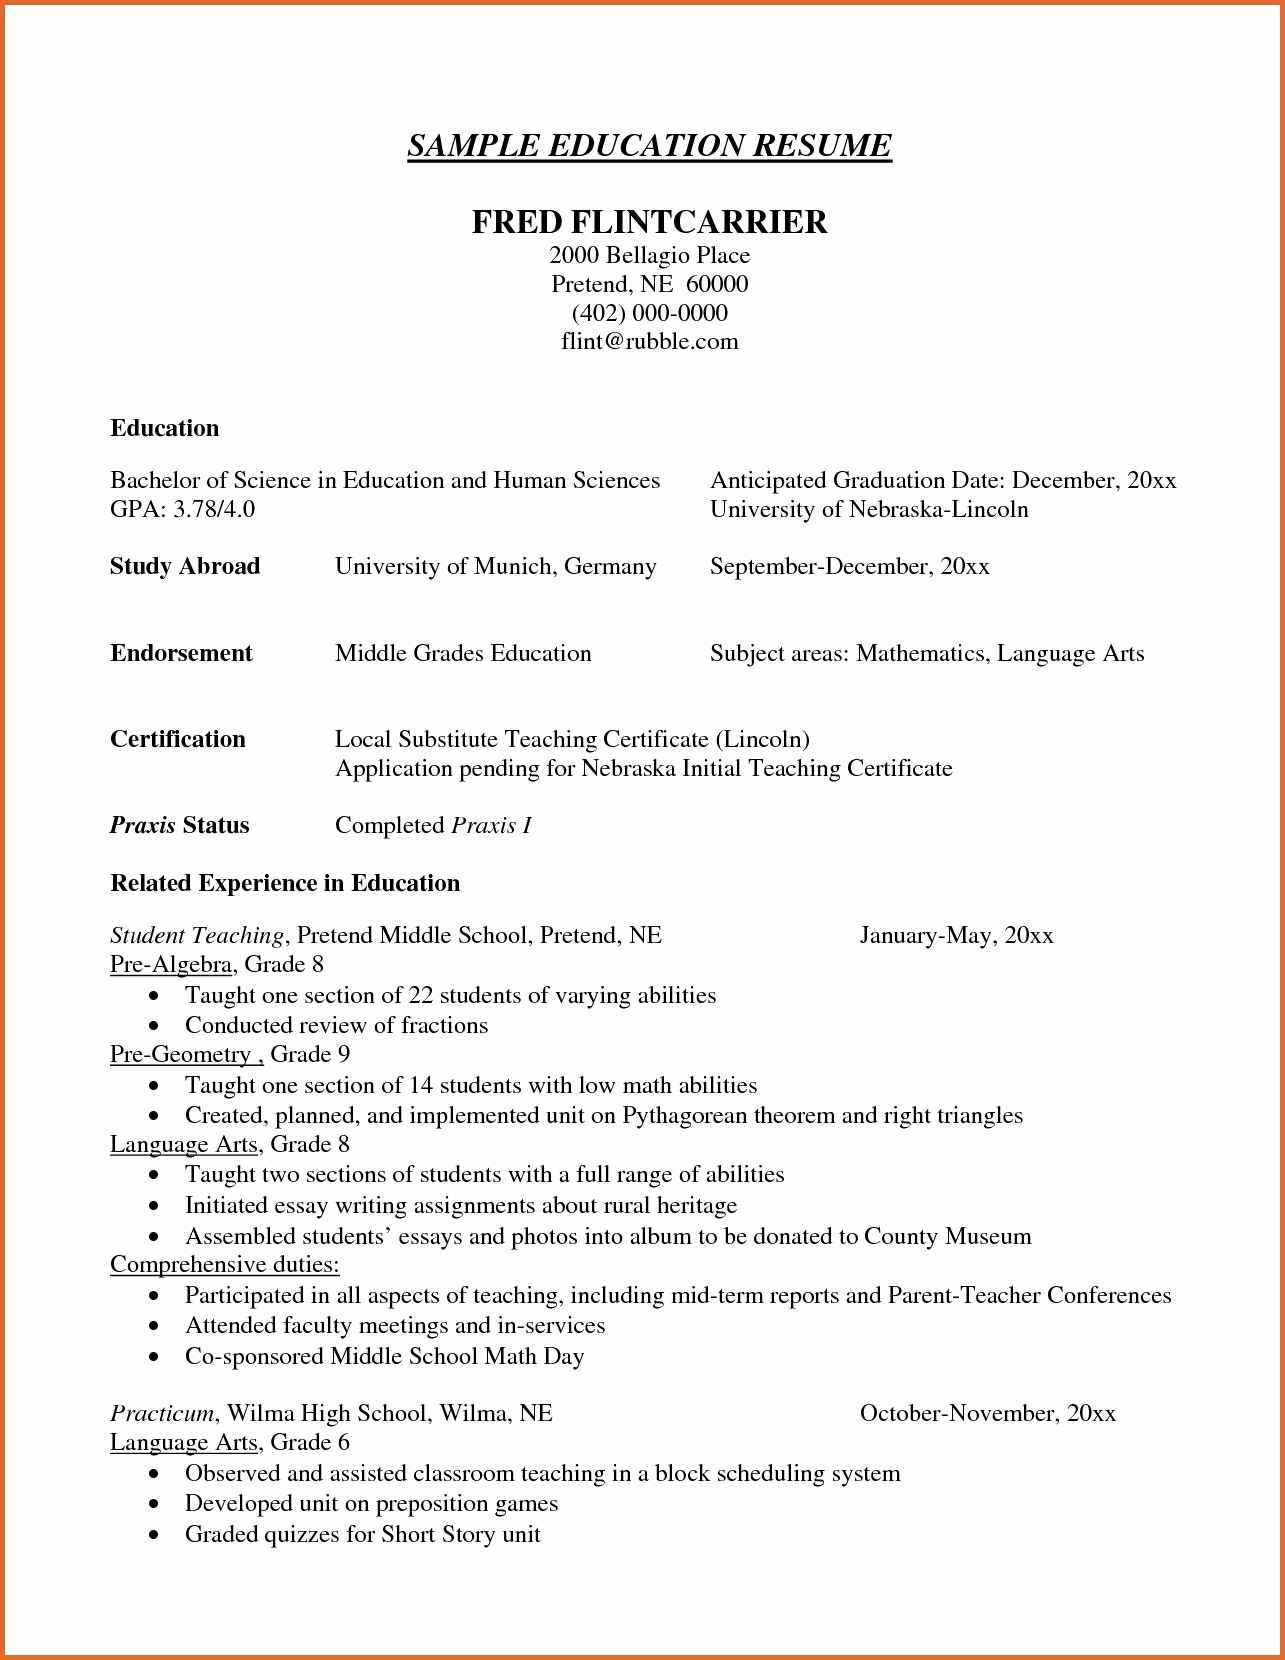 Peace Corps Resume Example - 16 Peace Corps Resume